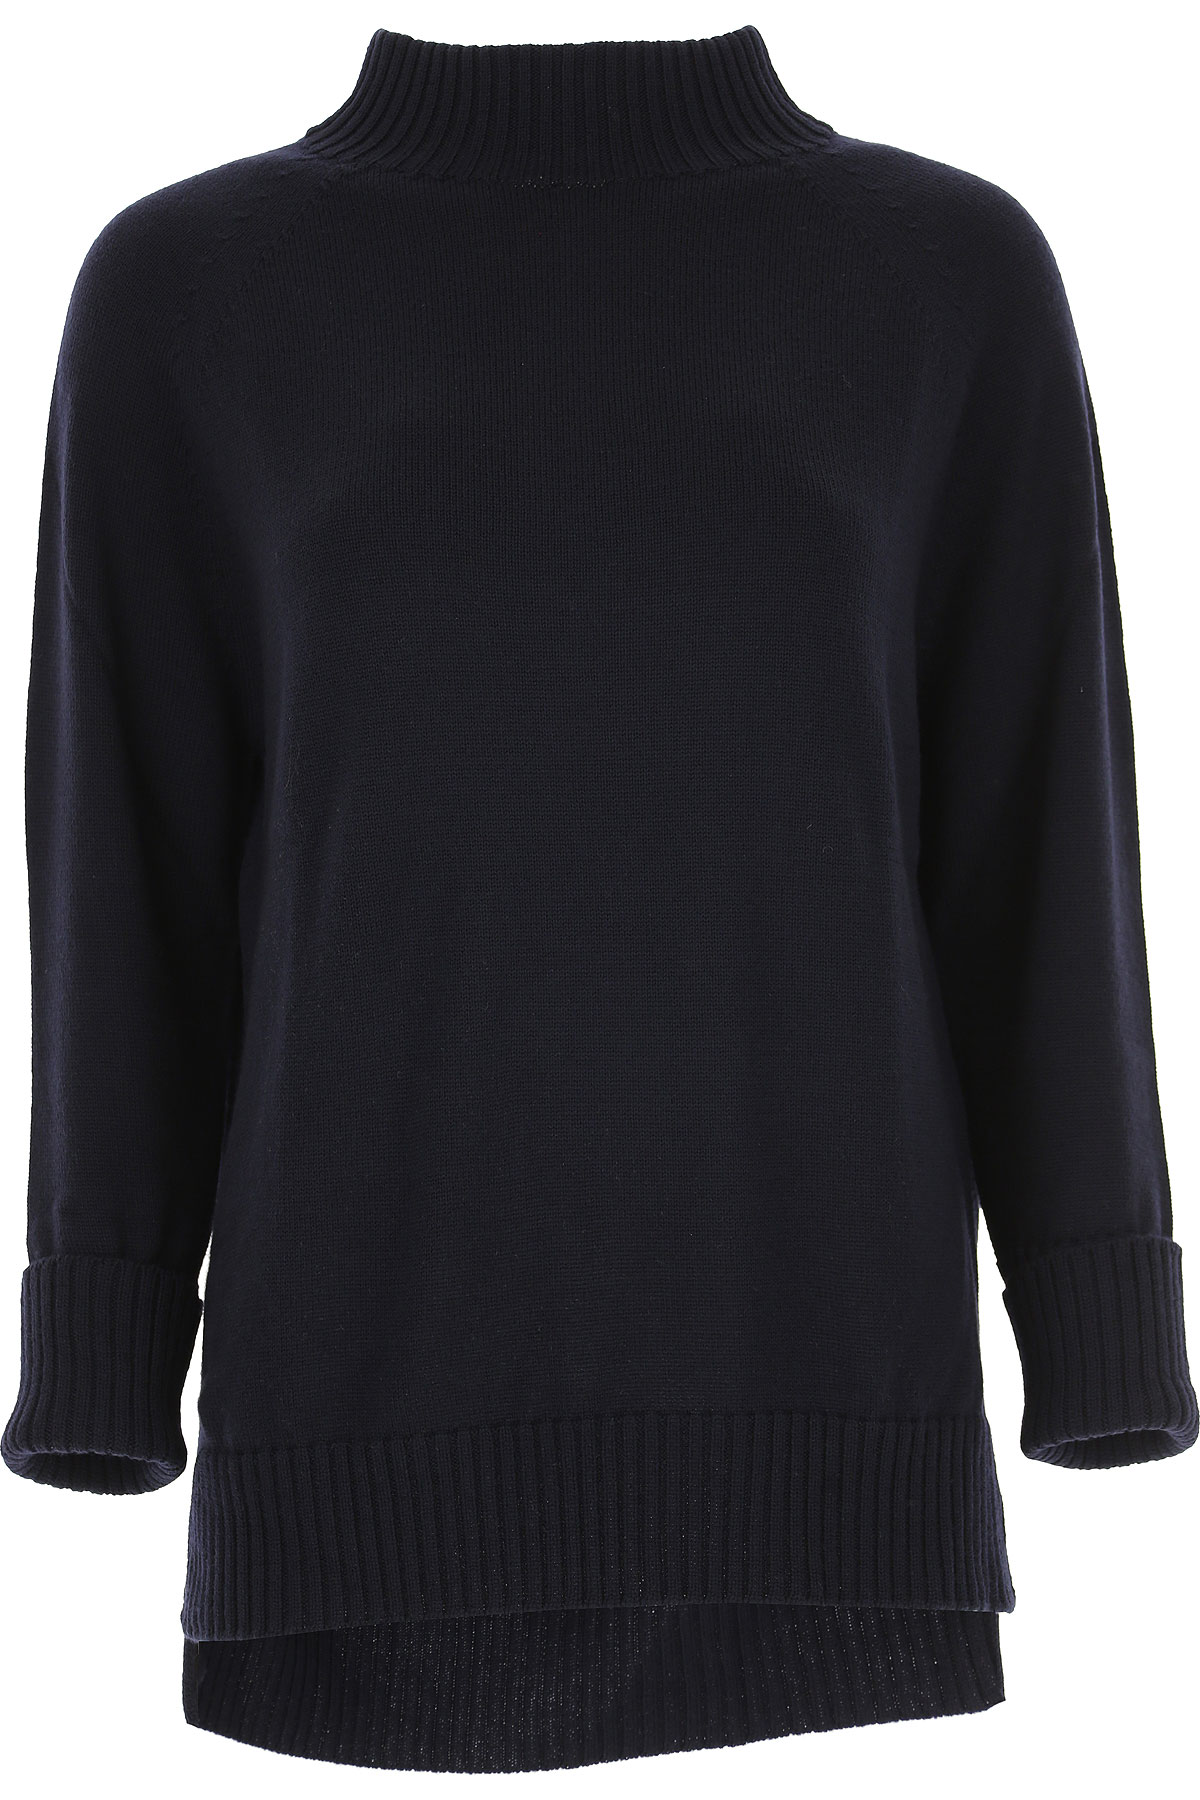 Image of Weekend by Max Mara Sweater for Women Jumper, Dark Navy Blue, Wool, 2017, 4 6